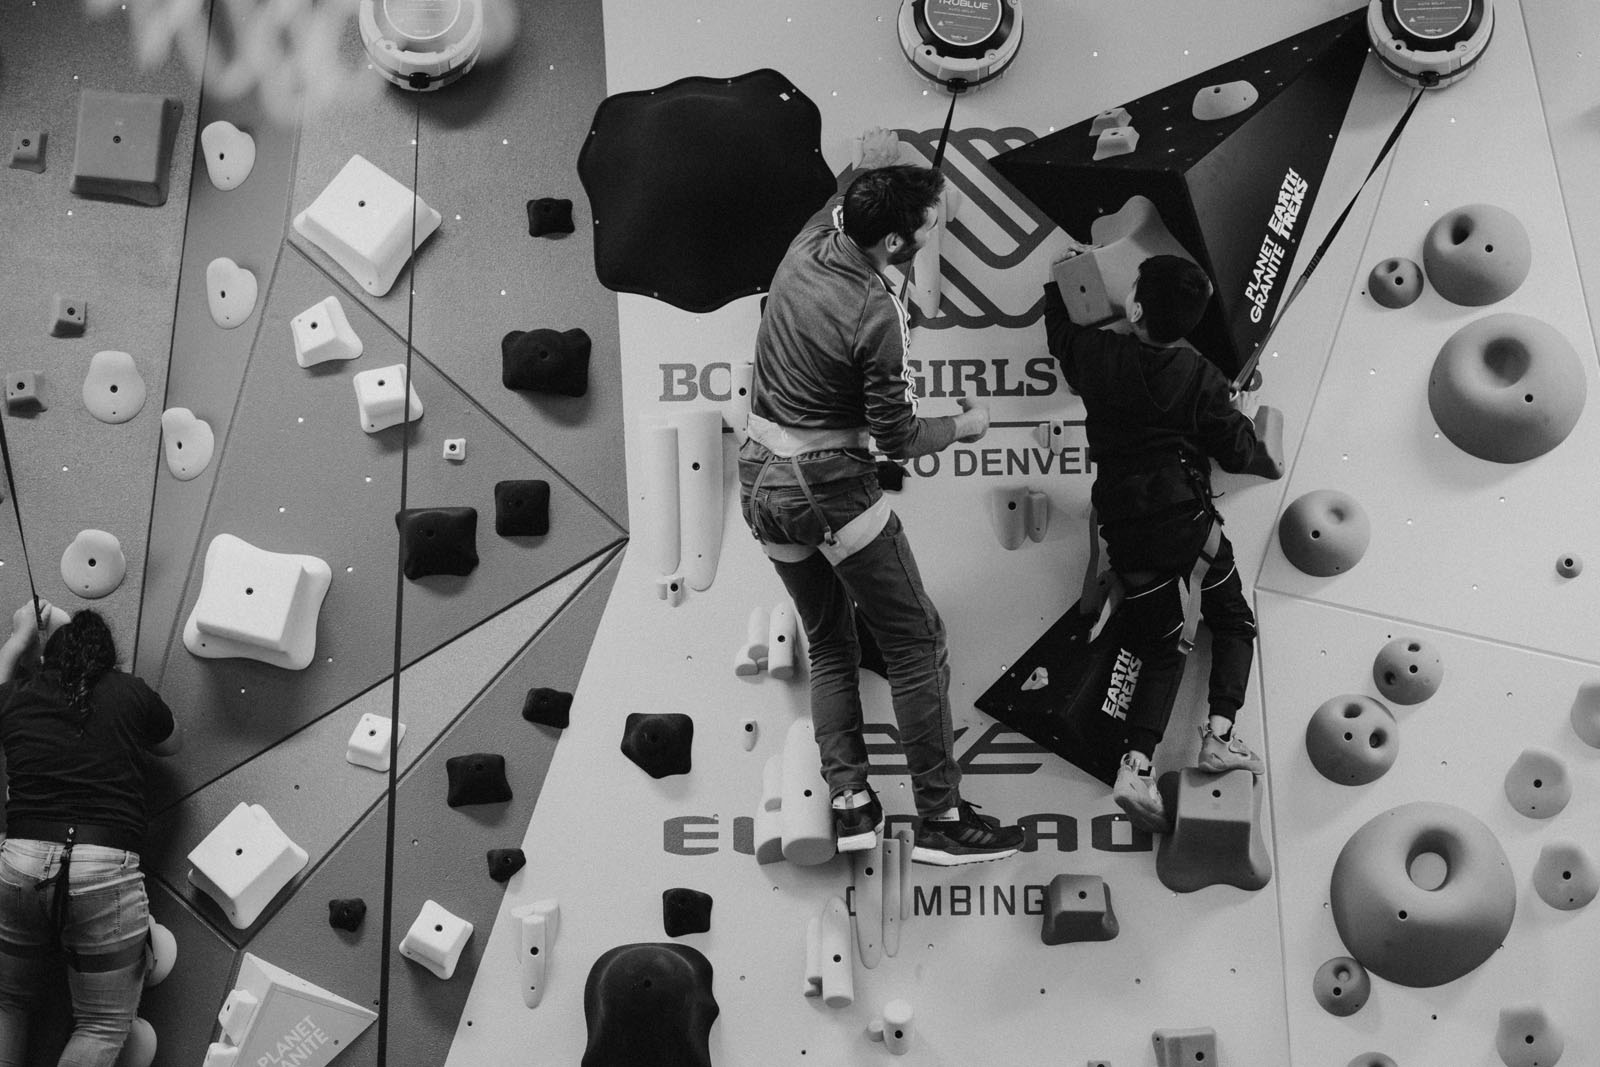 Climber and 1Climb cofounder Kevin Jorgeson helps a Boys and Girls club up the newly constructed Denver 1Climb wall